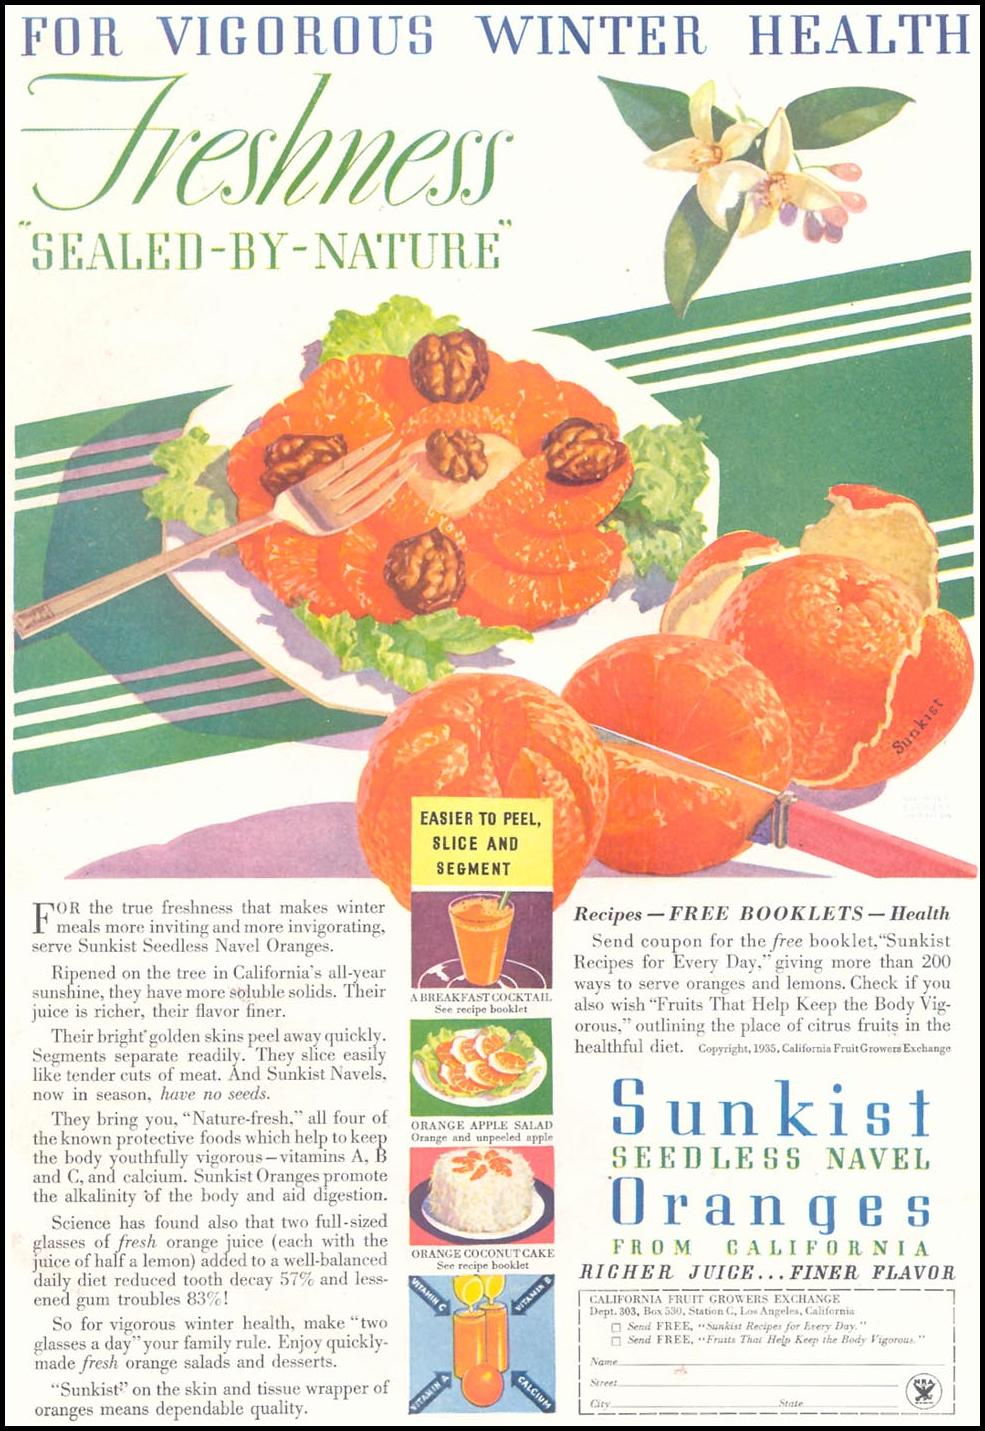 SUNKIST SEEDLESS NAVEL ORANGES